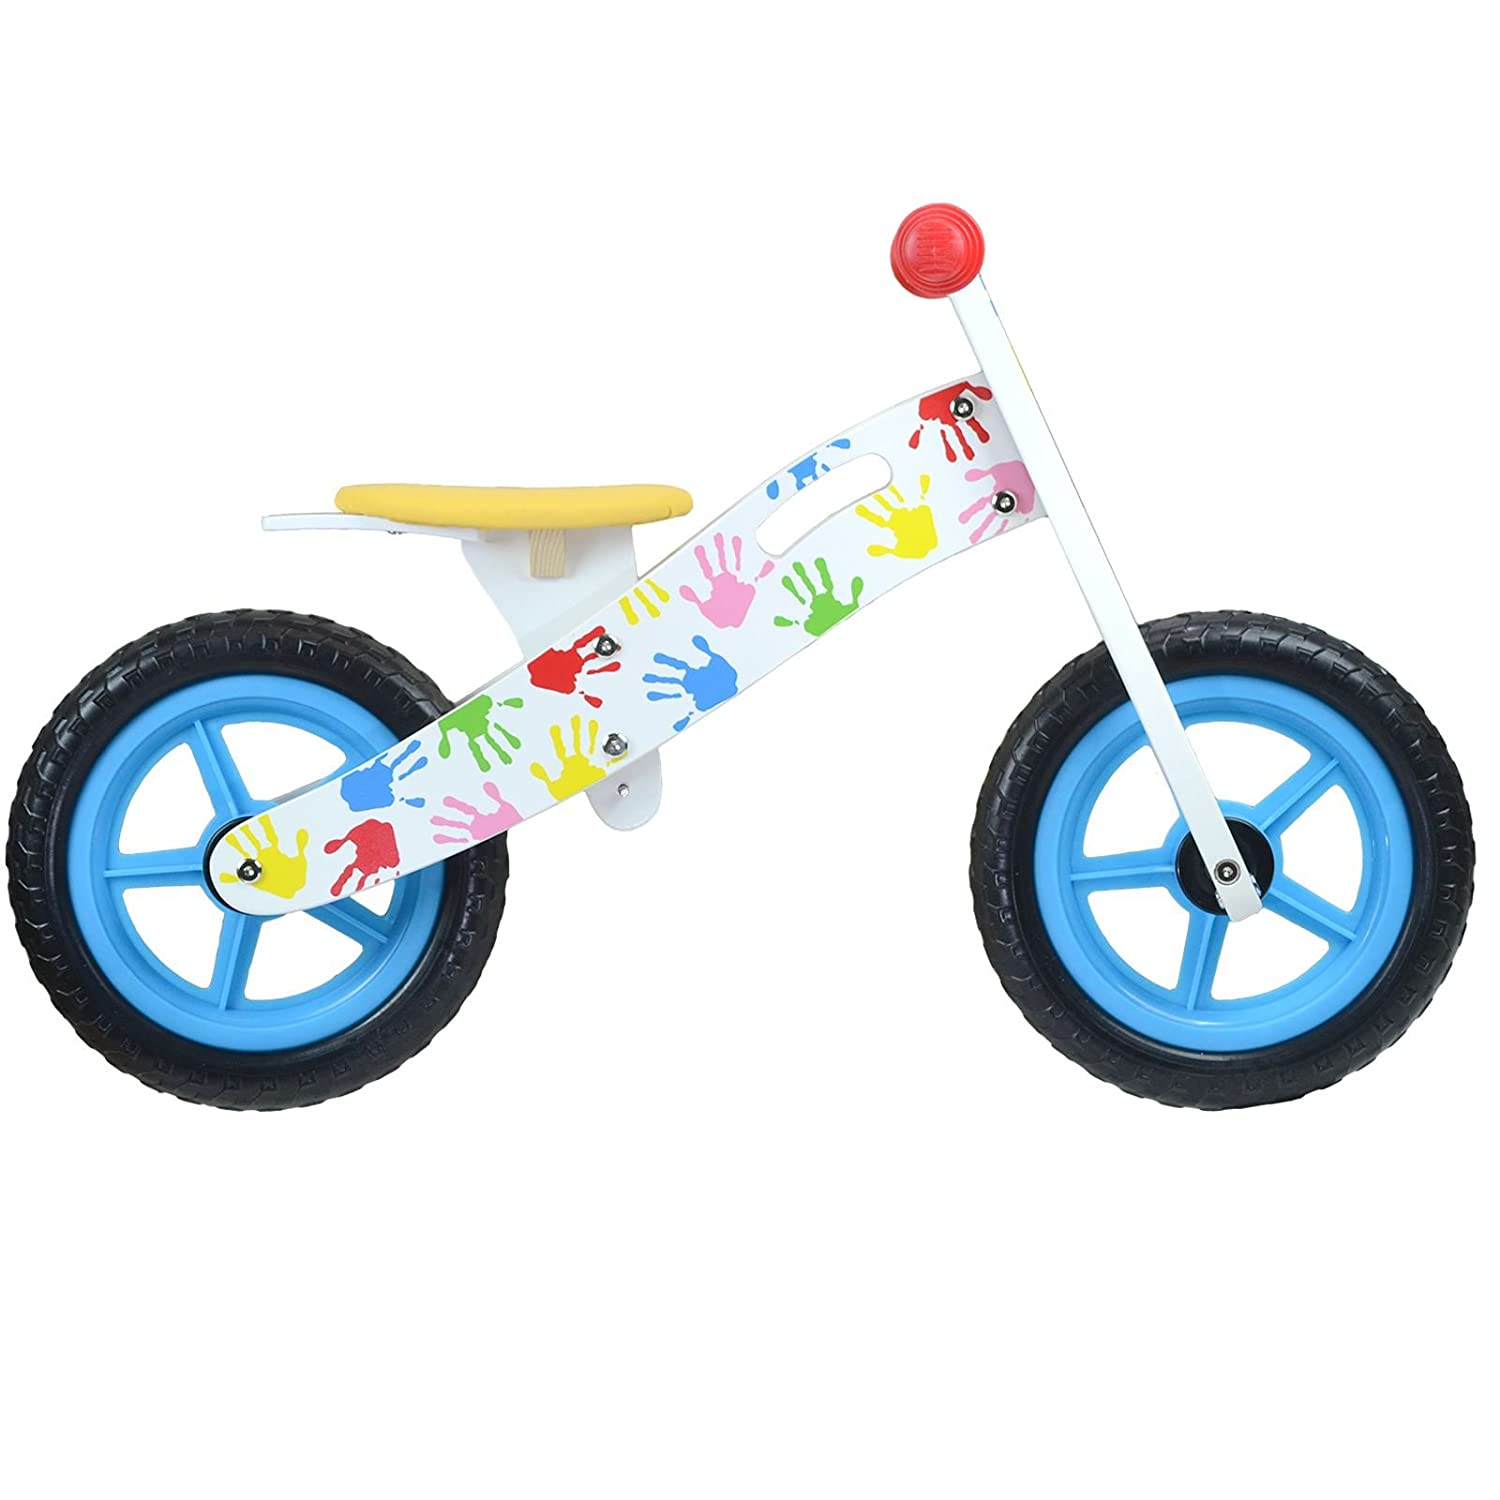 Amazon.com: Boppi Kids Wooden Balance Bike - 3, 4 and 5 Years - Hand Print: Toys & Games